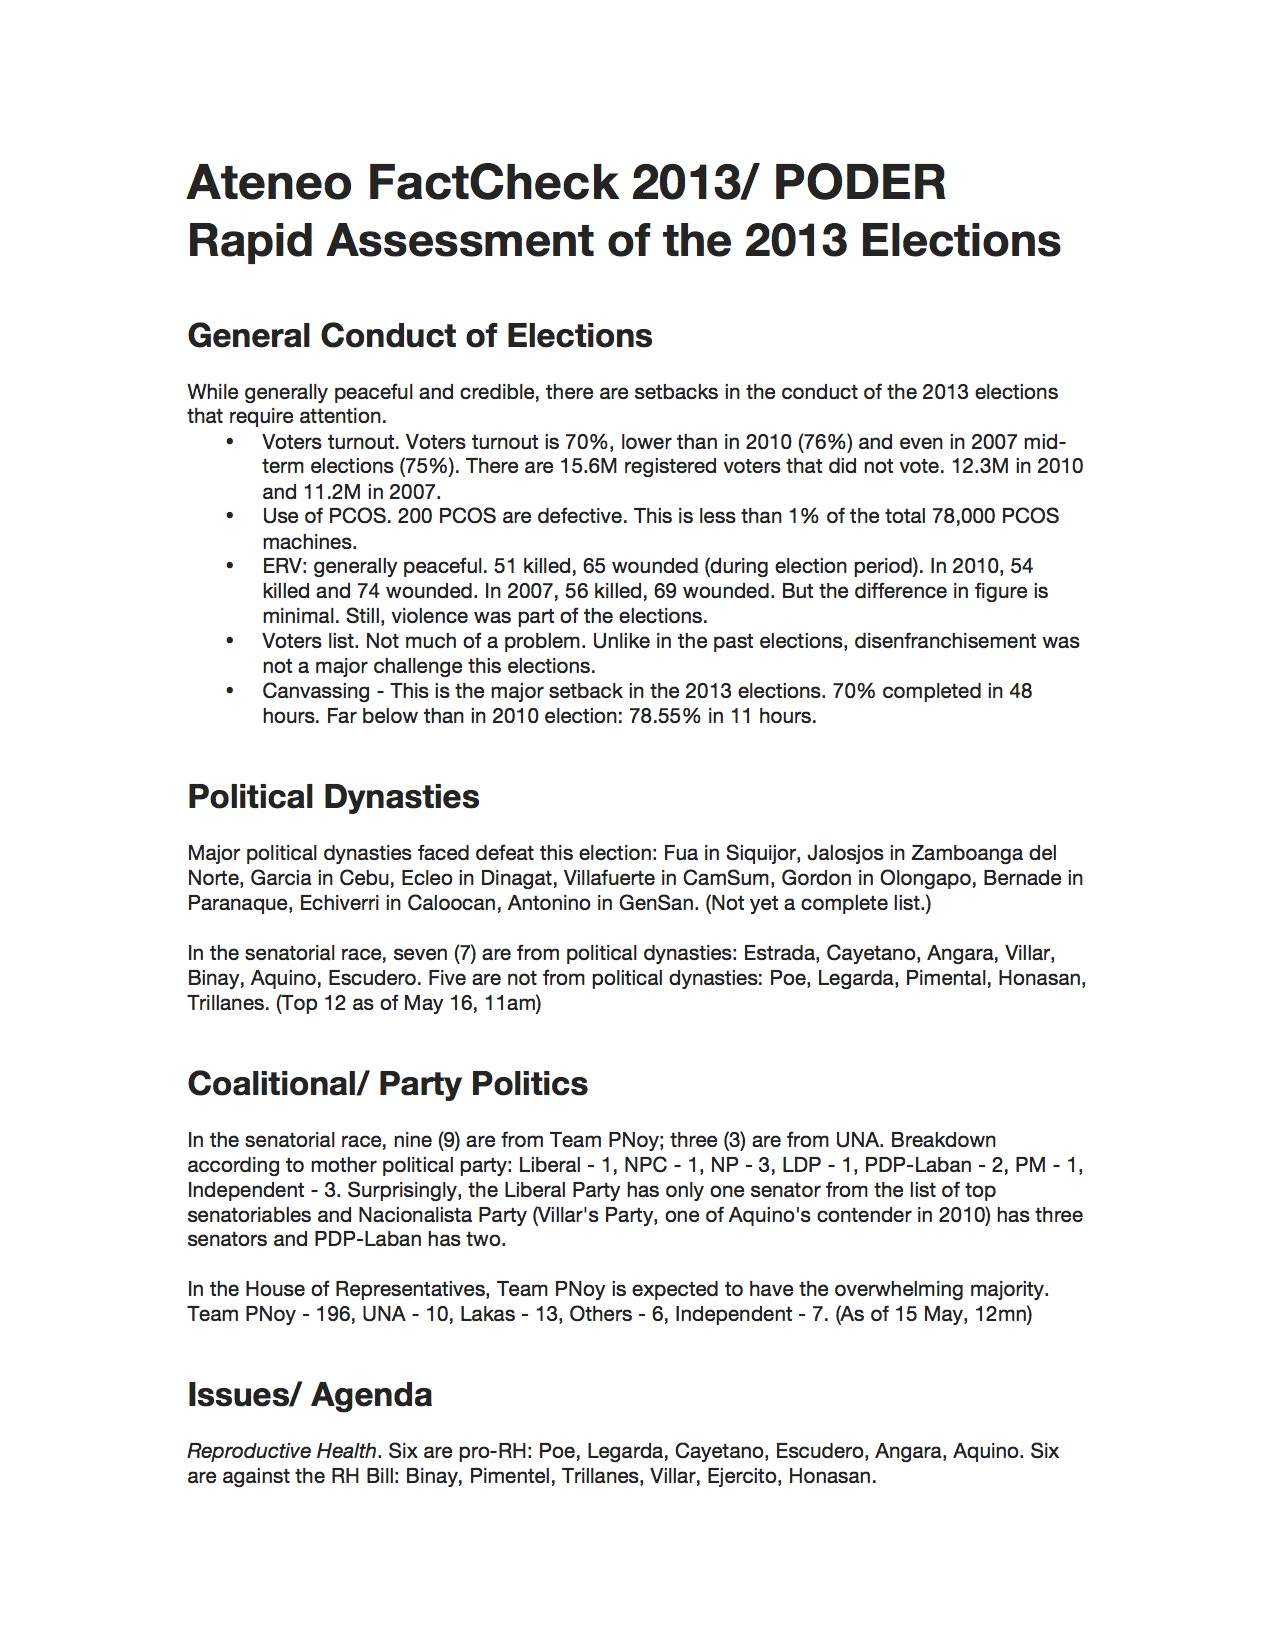 2013 Elections Rapid Assessment